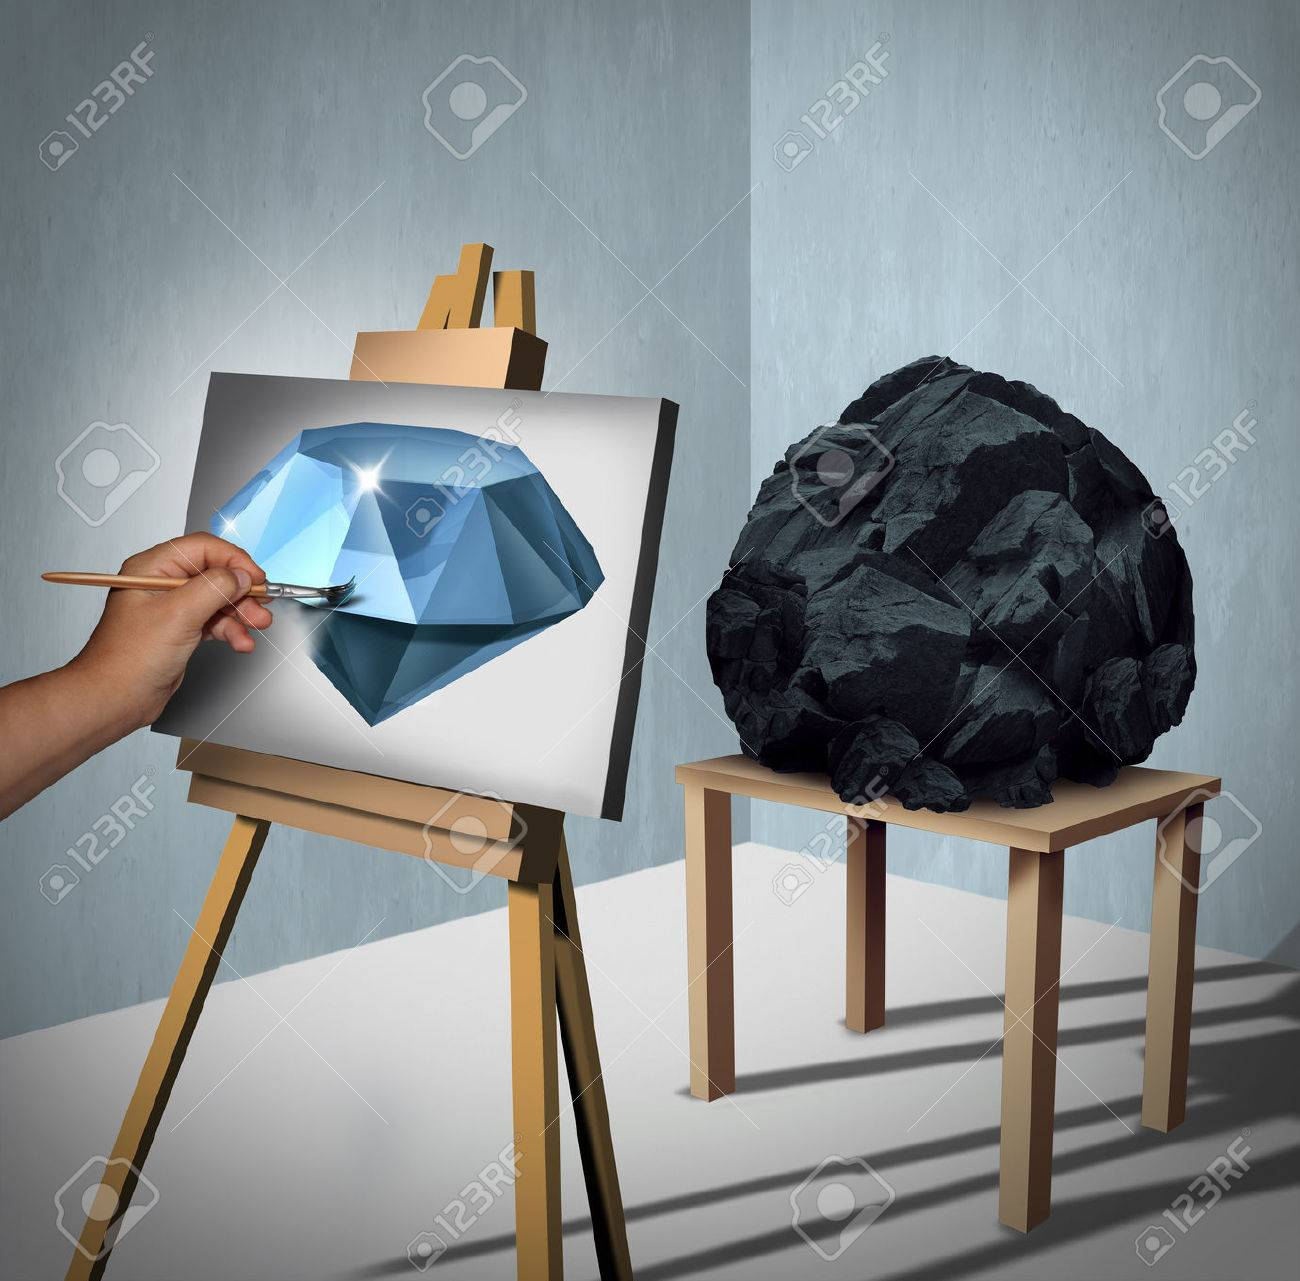 Seeing the possibilities or value opportunity and creating wealth financial concept as a painter looking at a rock or coal and inertpreting the object as a painted precious diamond on canvas with 3D illustration elements. Stock Illustration - 58584036